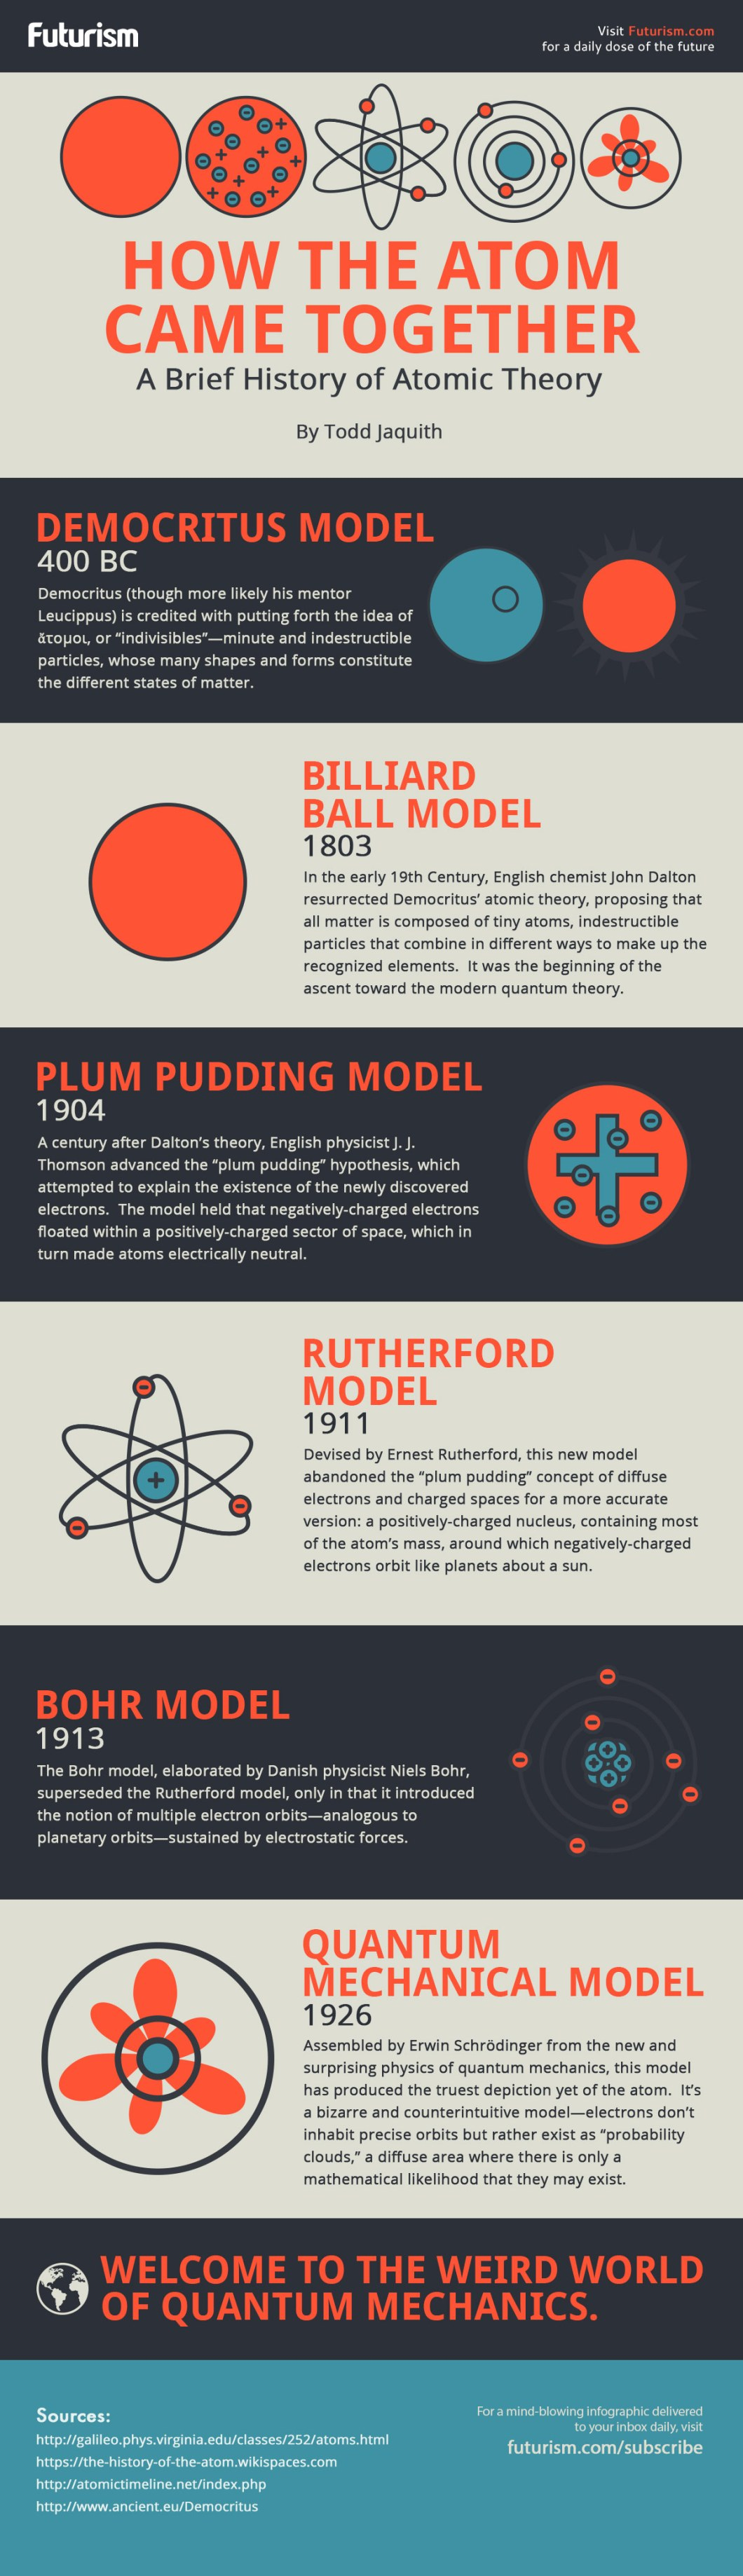 How The Atom Theory Was Put Together Originally - Infographic